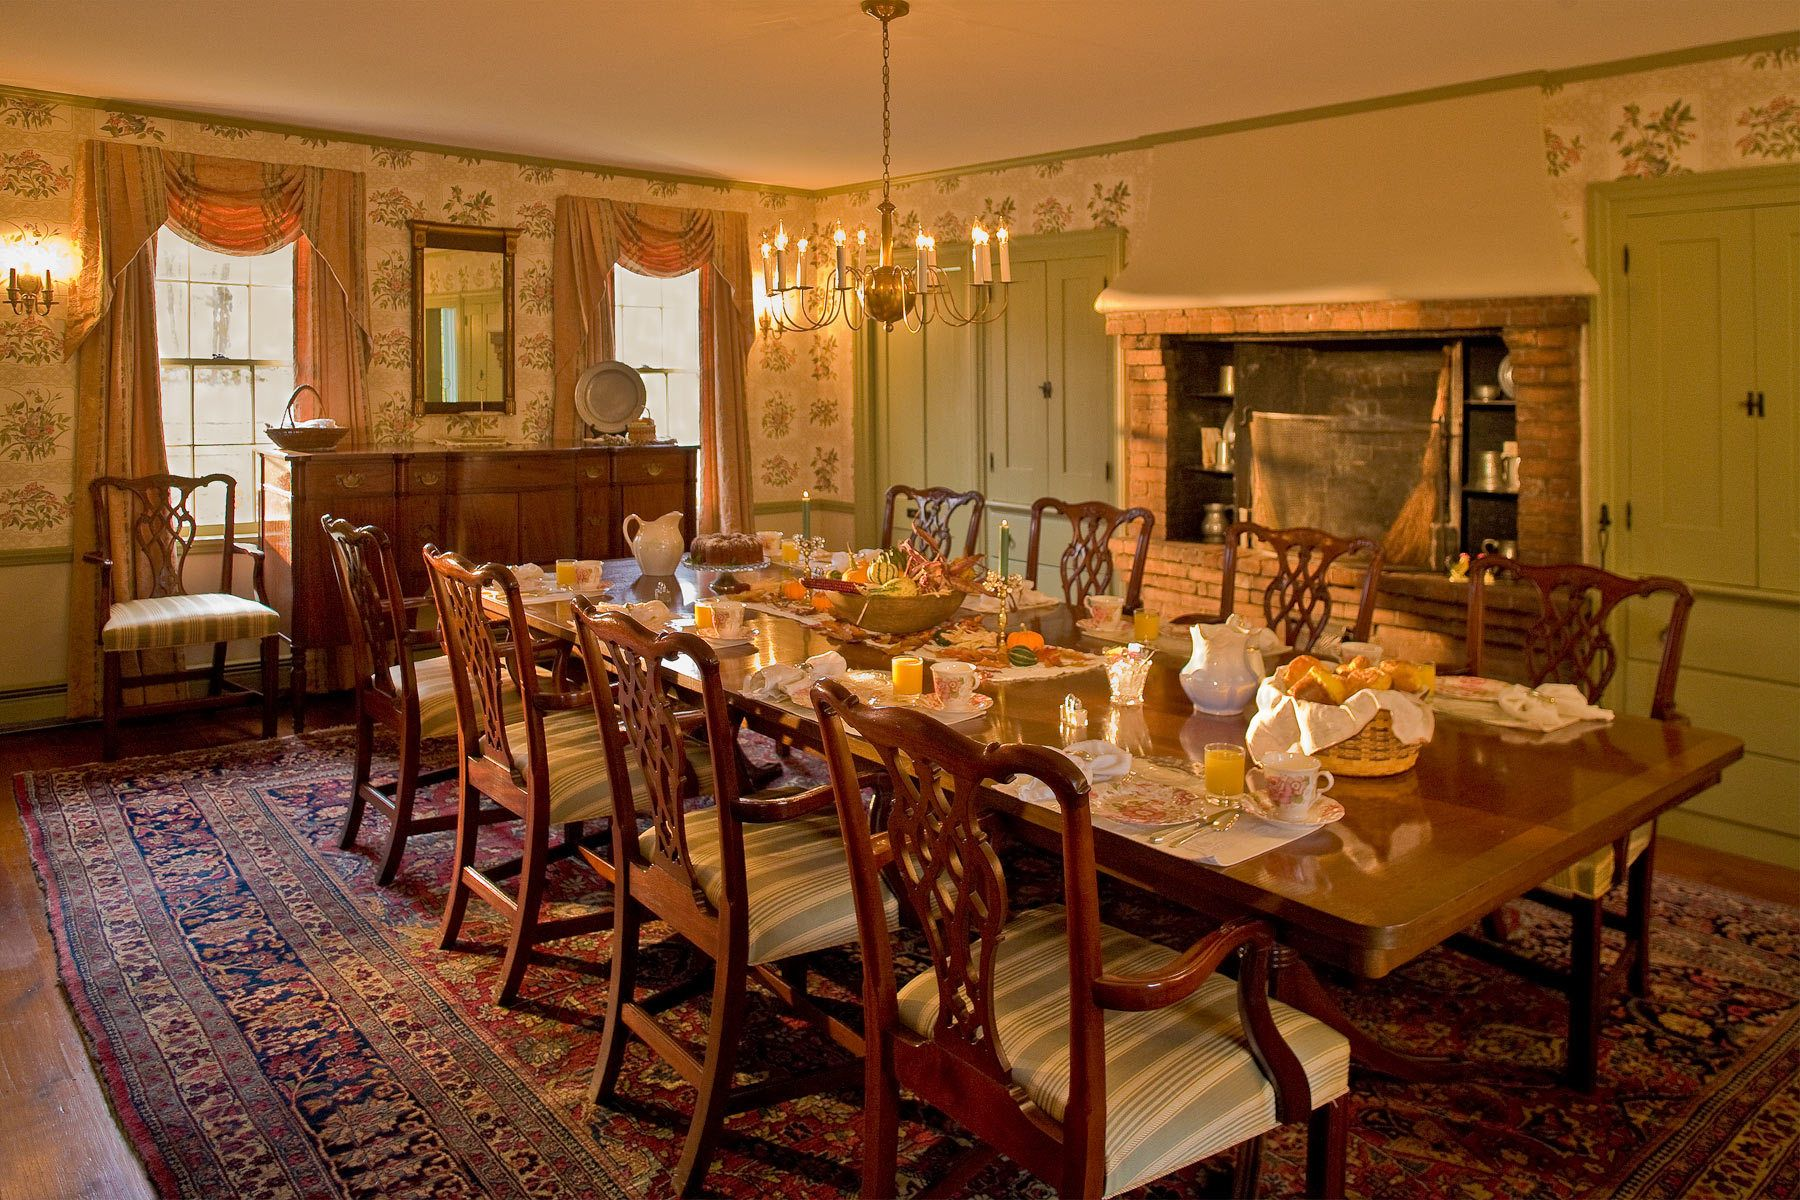 Dinning Room at The Inn at Valley Farms